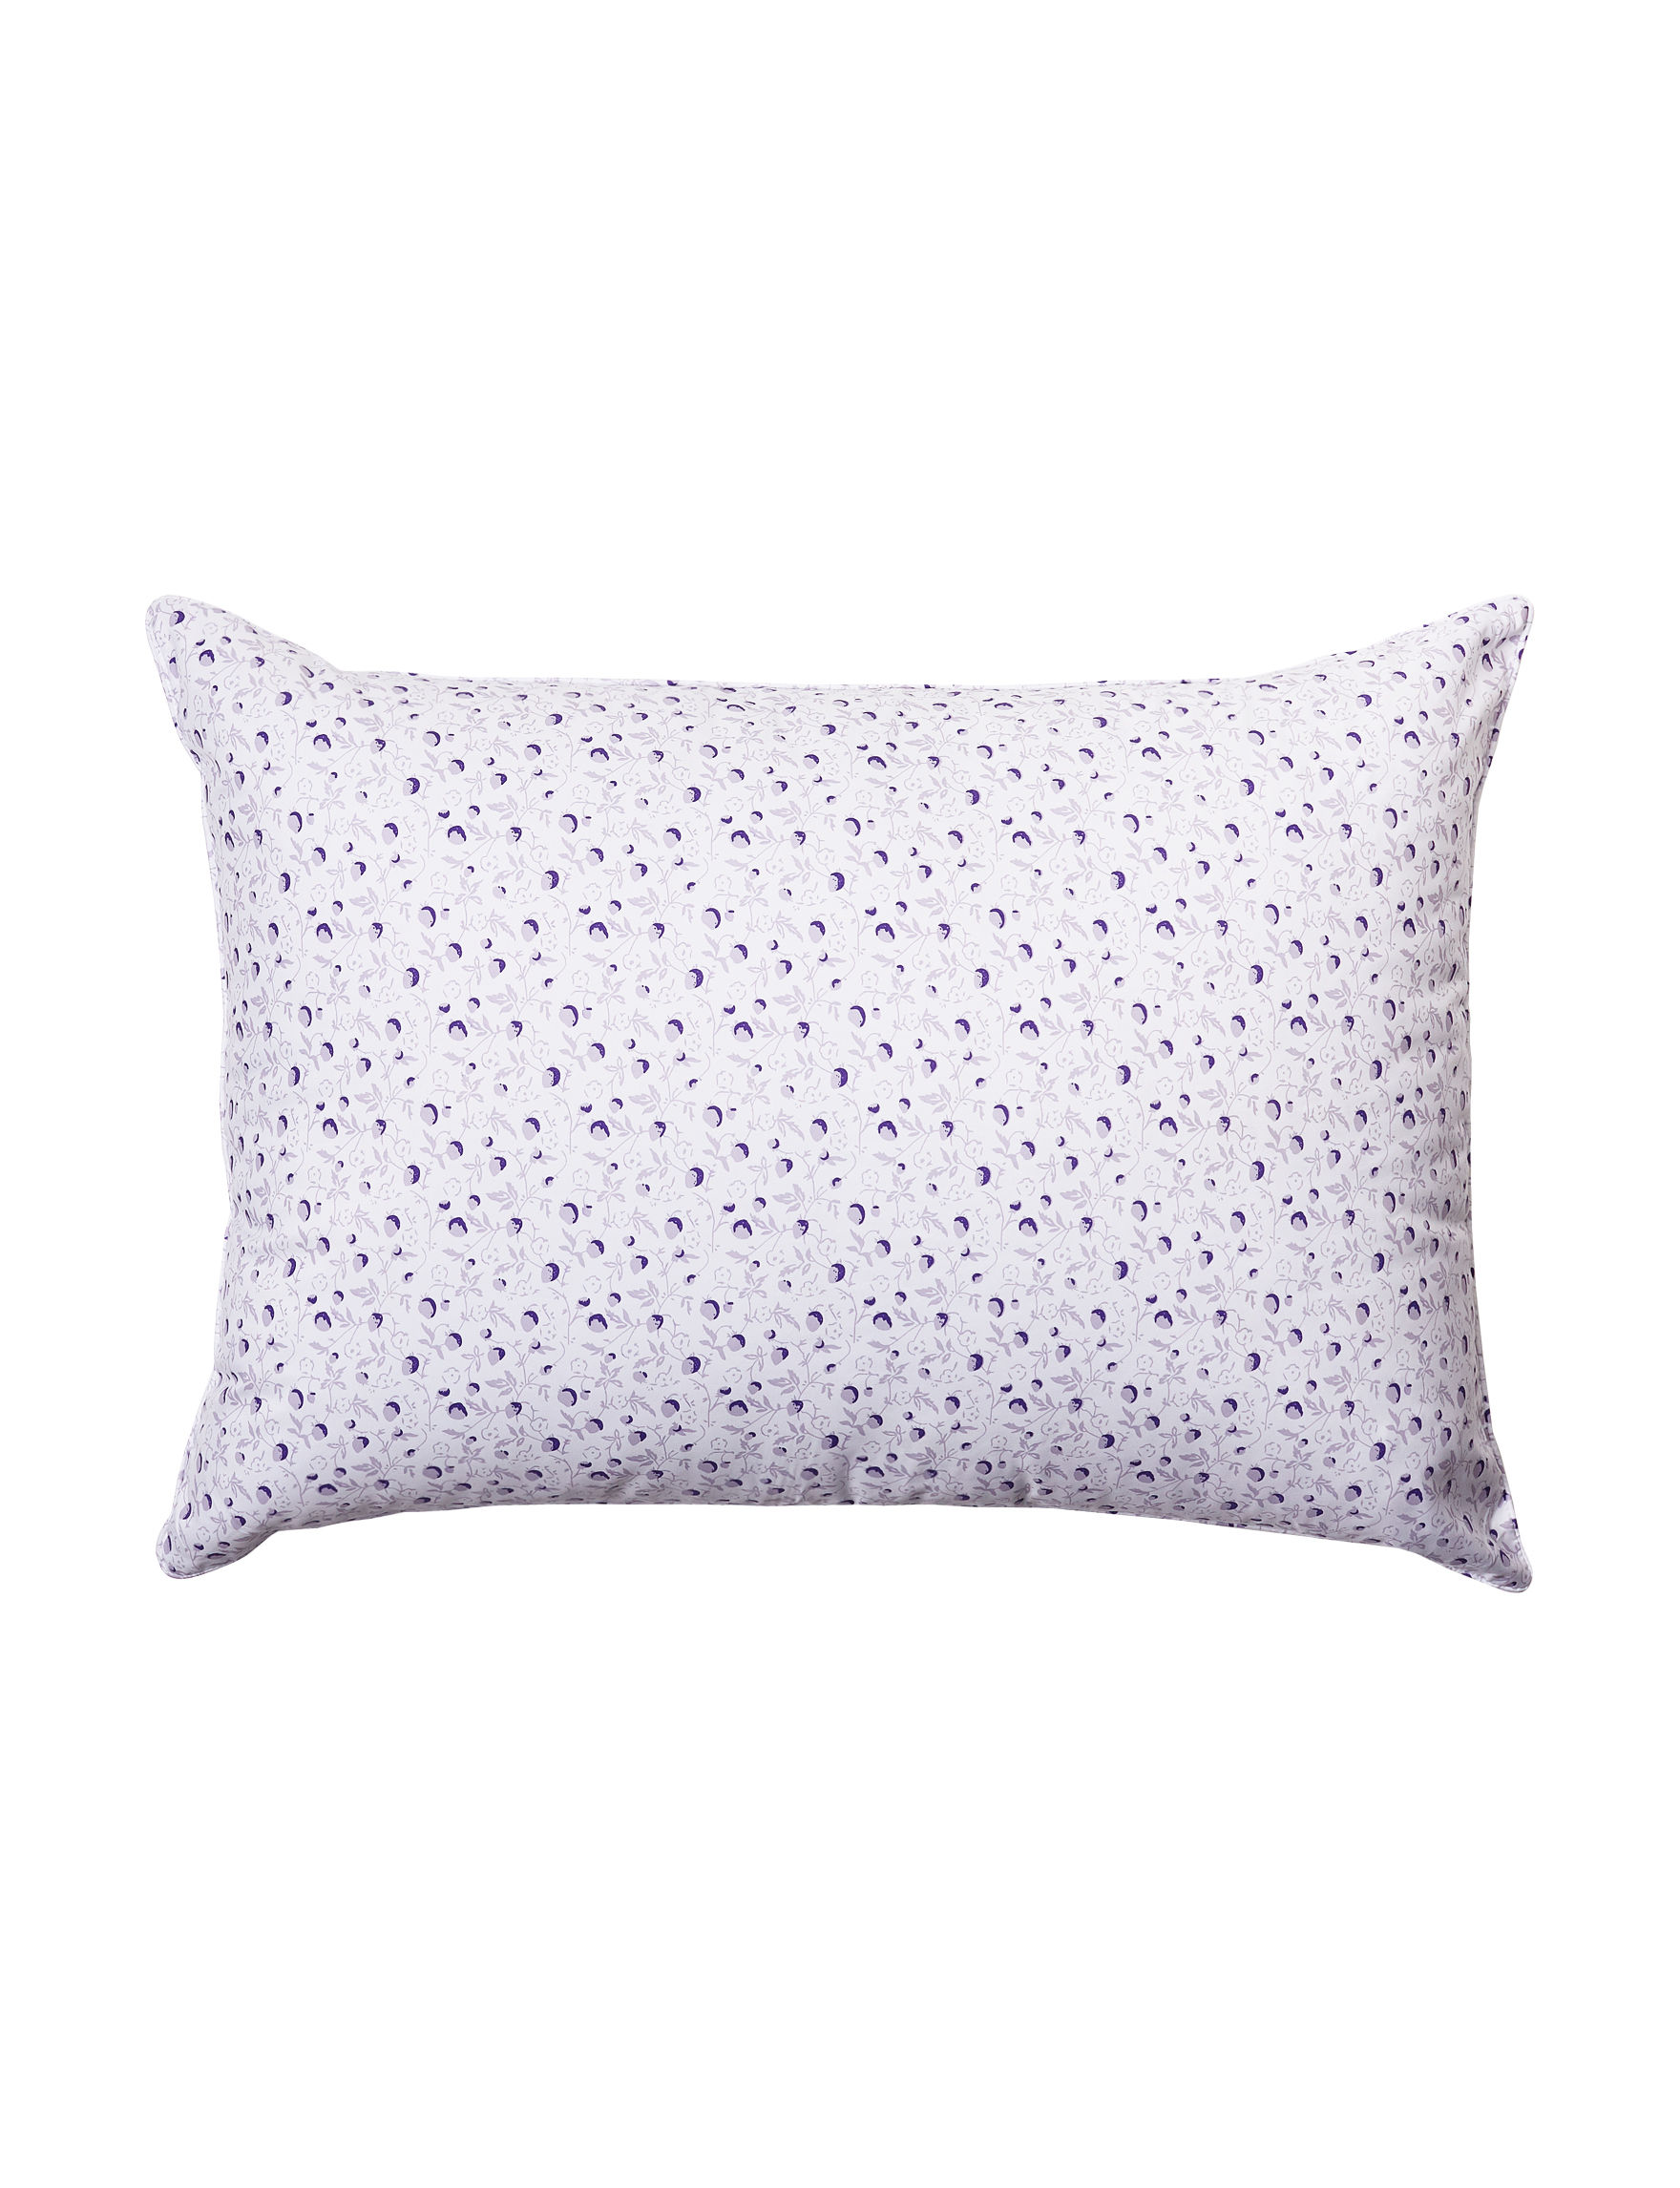 Laura Ashley White / Purple Bed Pillows